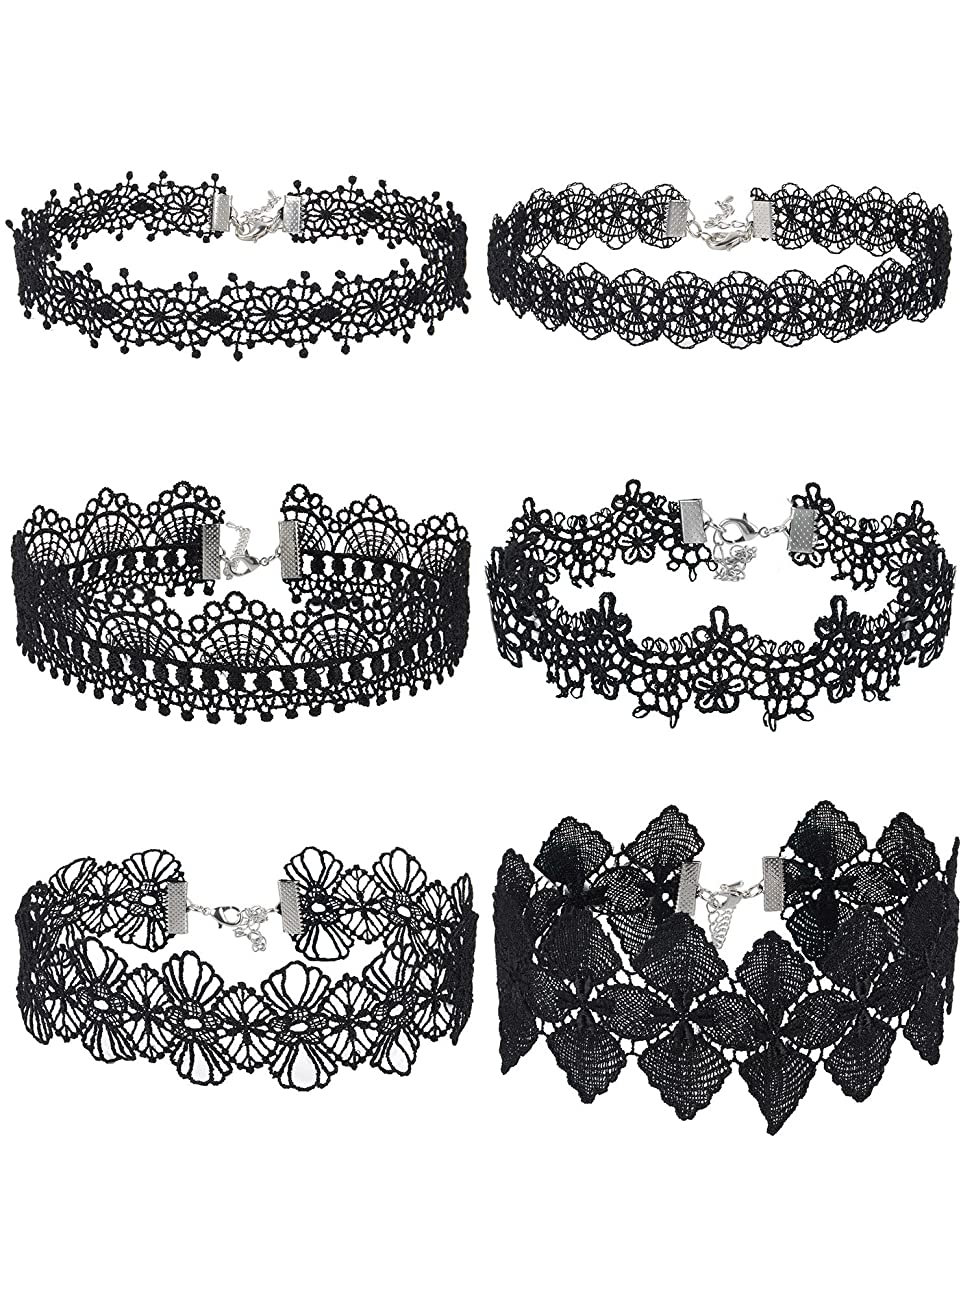 Mudder Choker Necklace Black Choker Lace Choker Gothic Necklace for Women Girls, Black, 6 Pieces